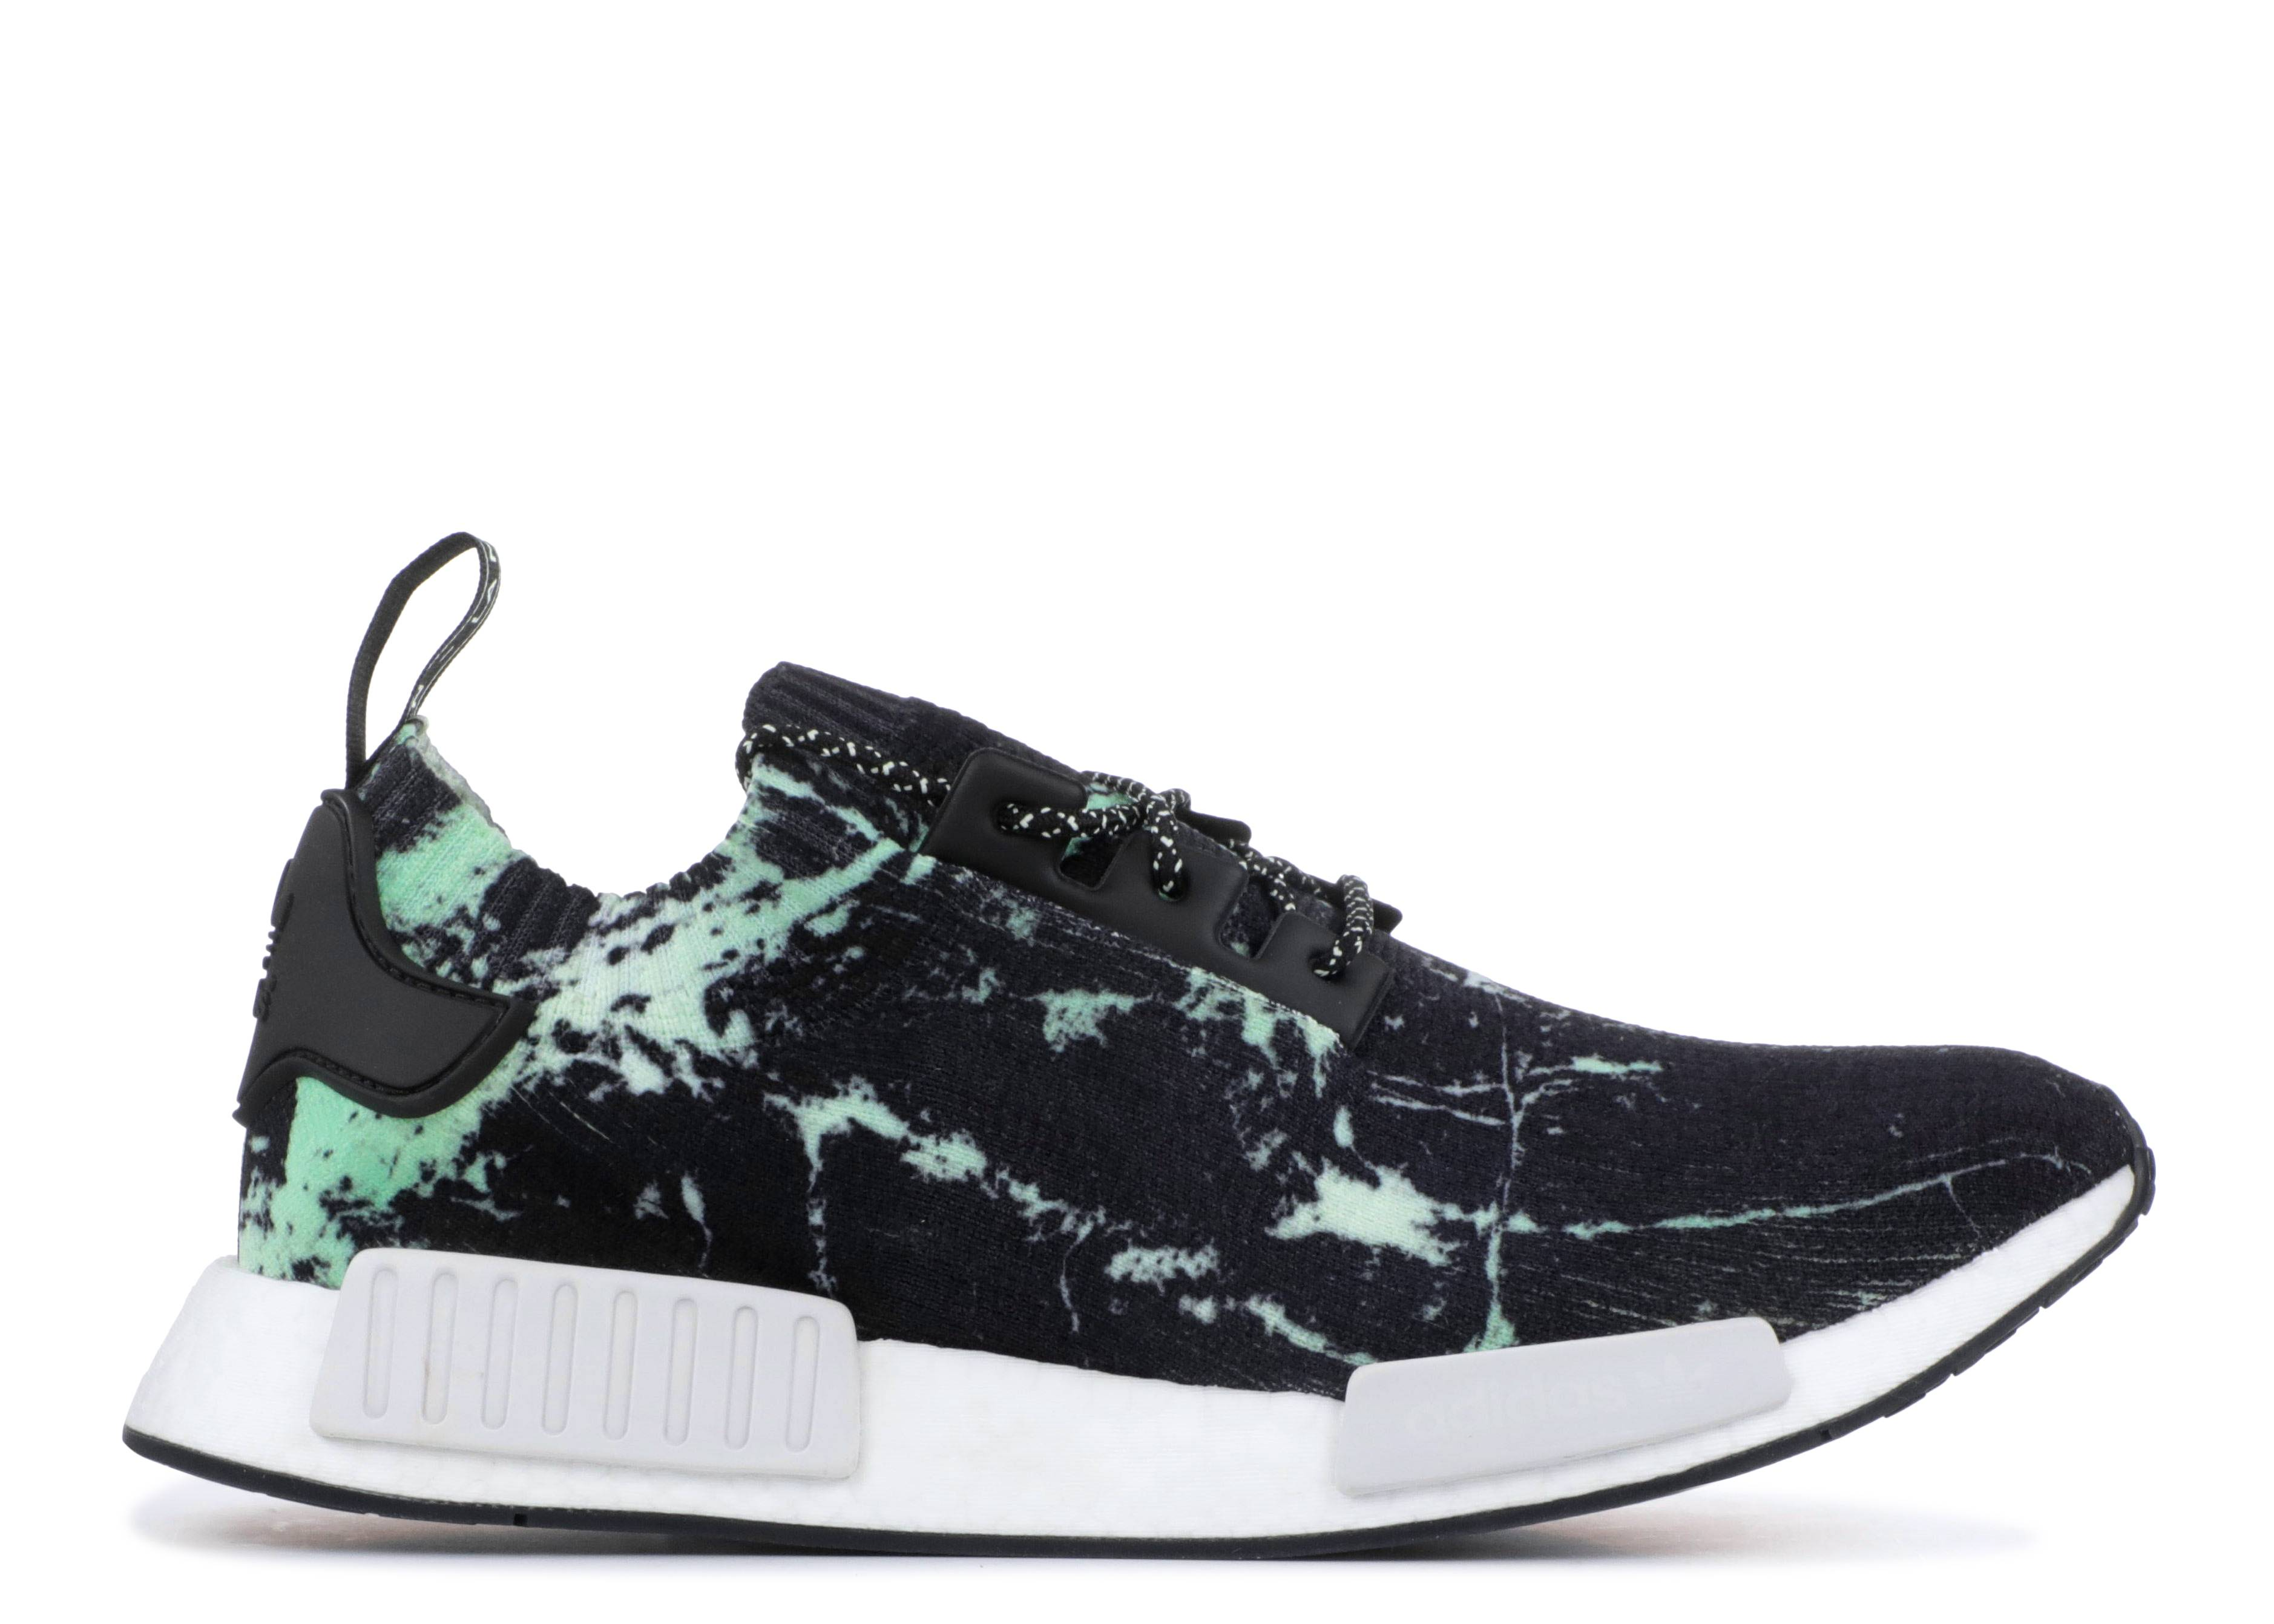 adidas NMD R1 Marble Primeknit BB7996 Release Date